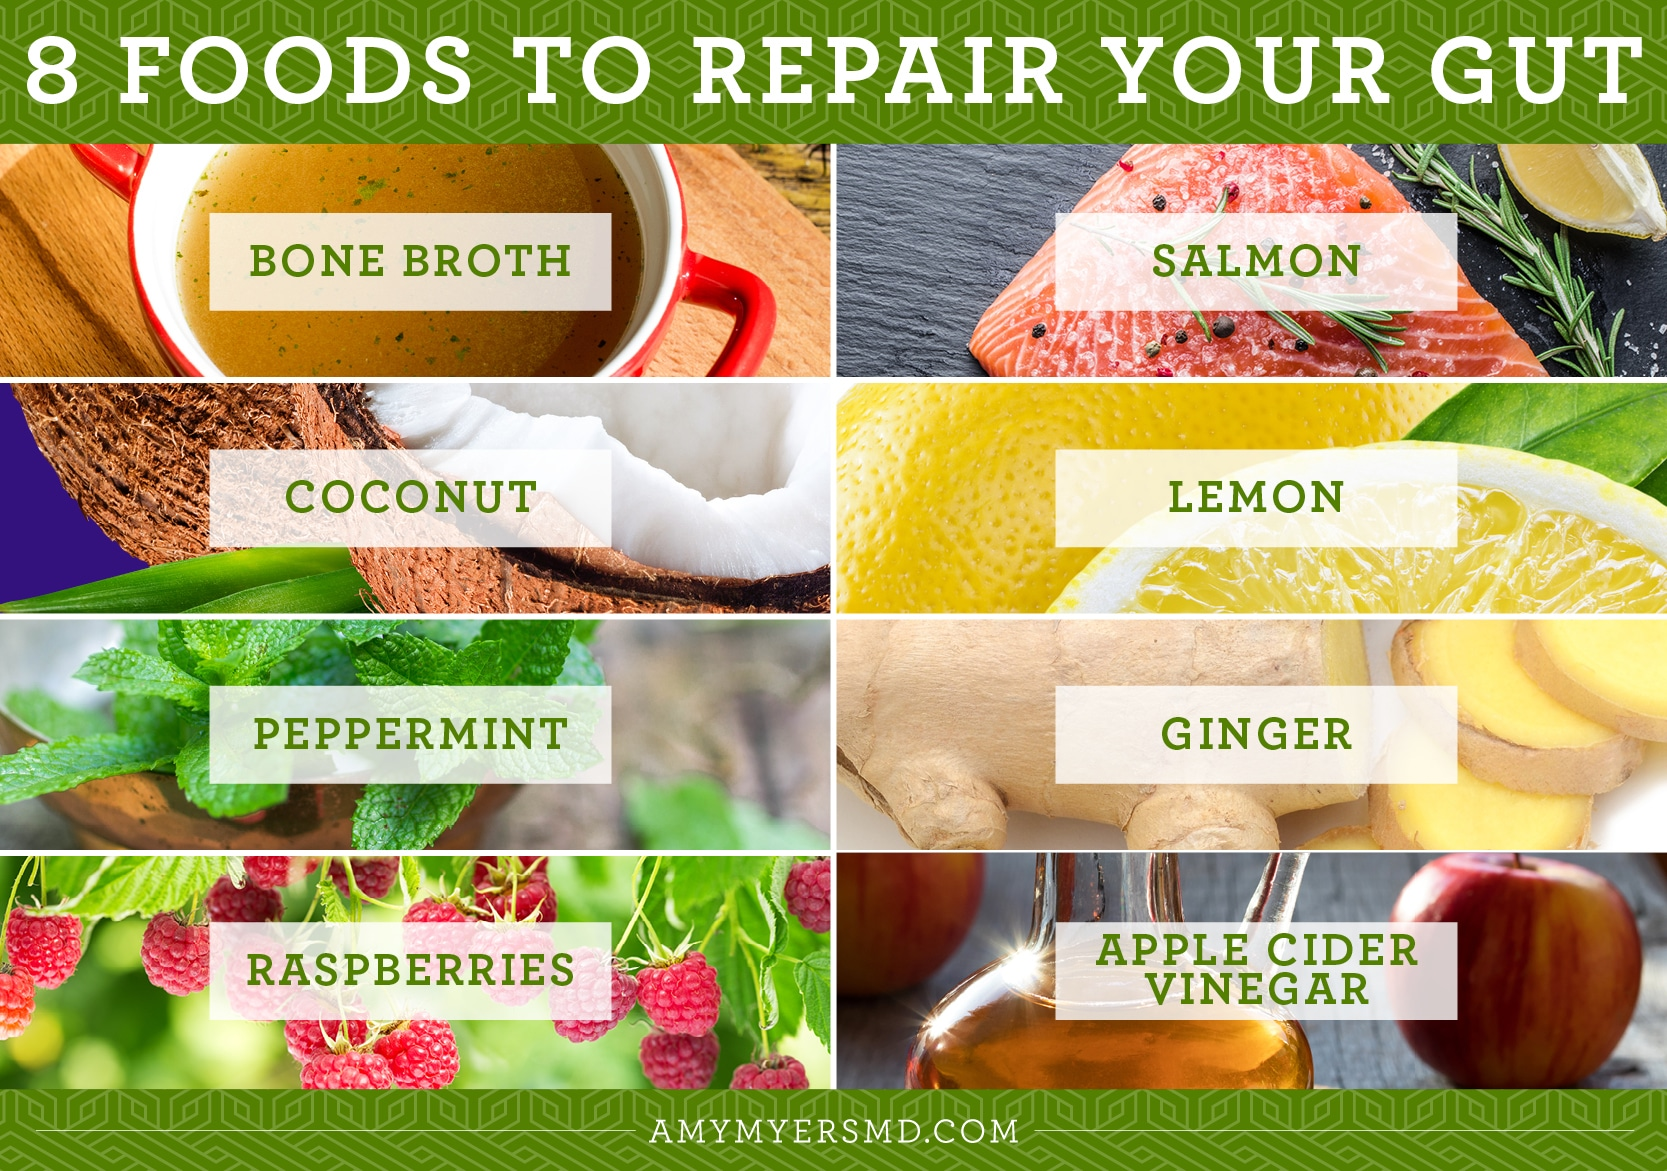 8 Foods to Repair Your Gut - Infographic - Amy Myers MD